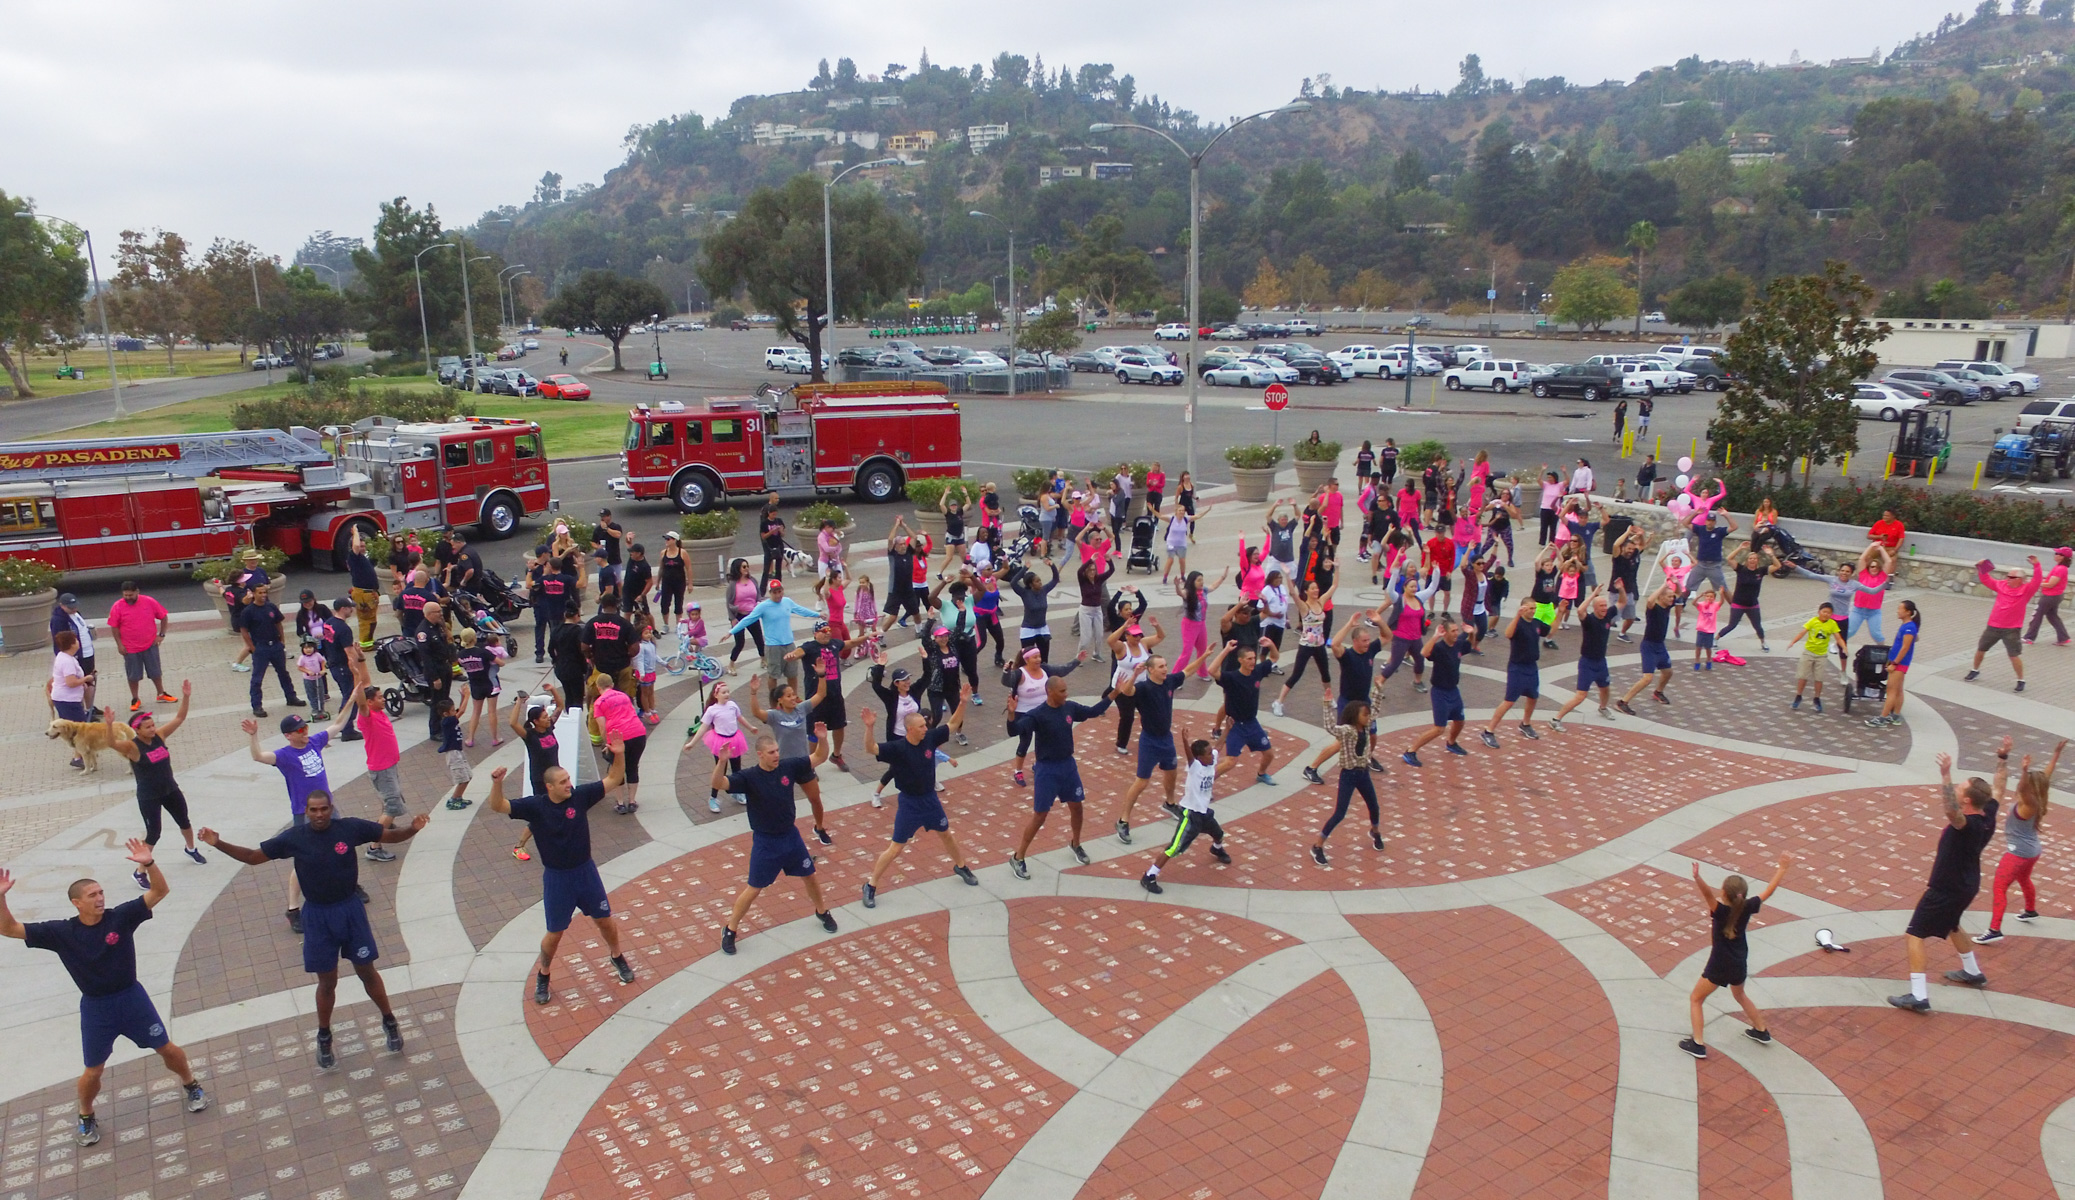 Pasadena Fire Department Goes Pink Event 10-02-2016_1007